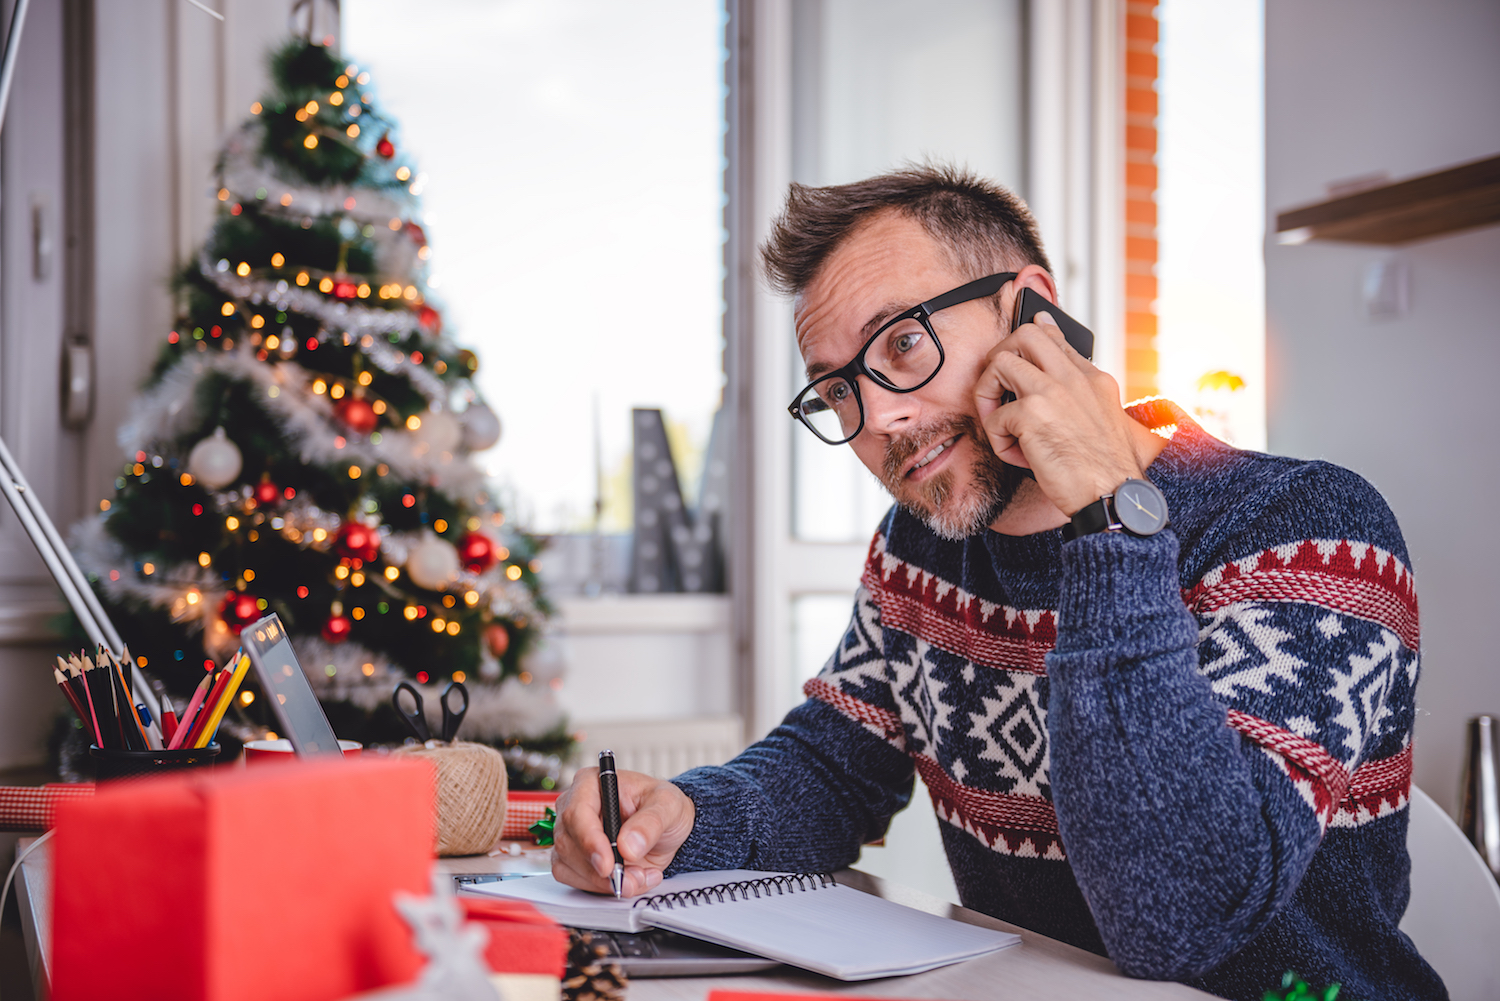 Men wearing blue sweater and eyeglasses talking on smart phone and writing notes